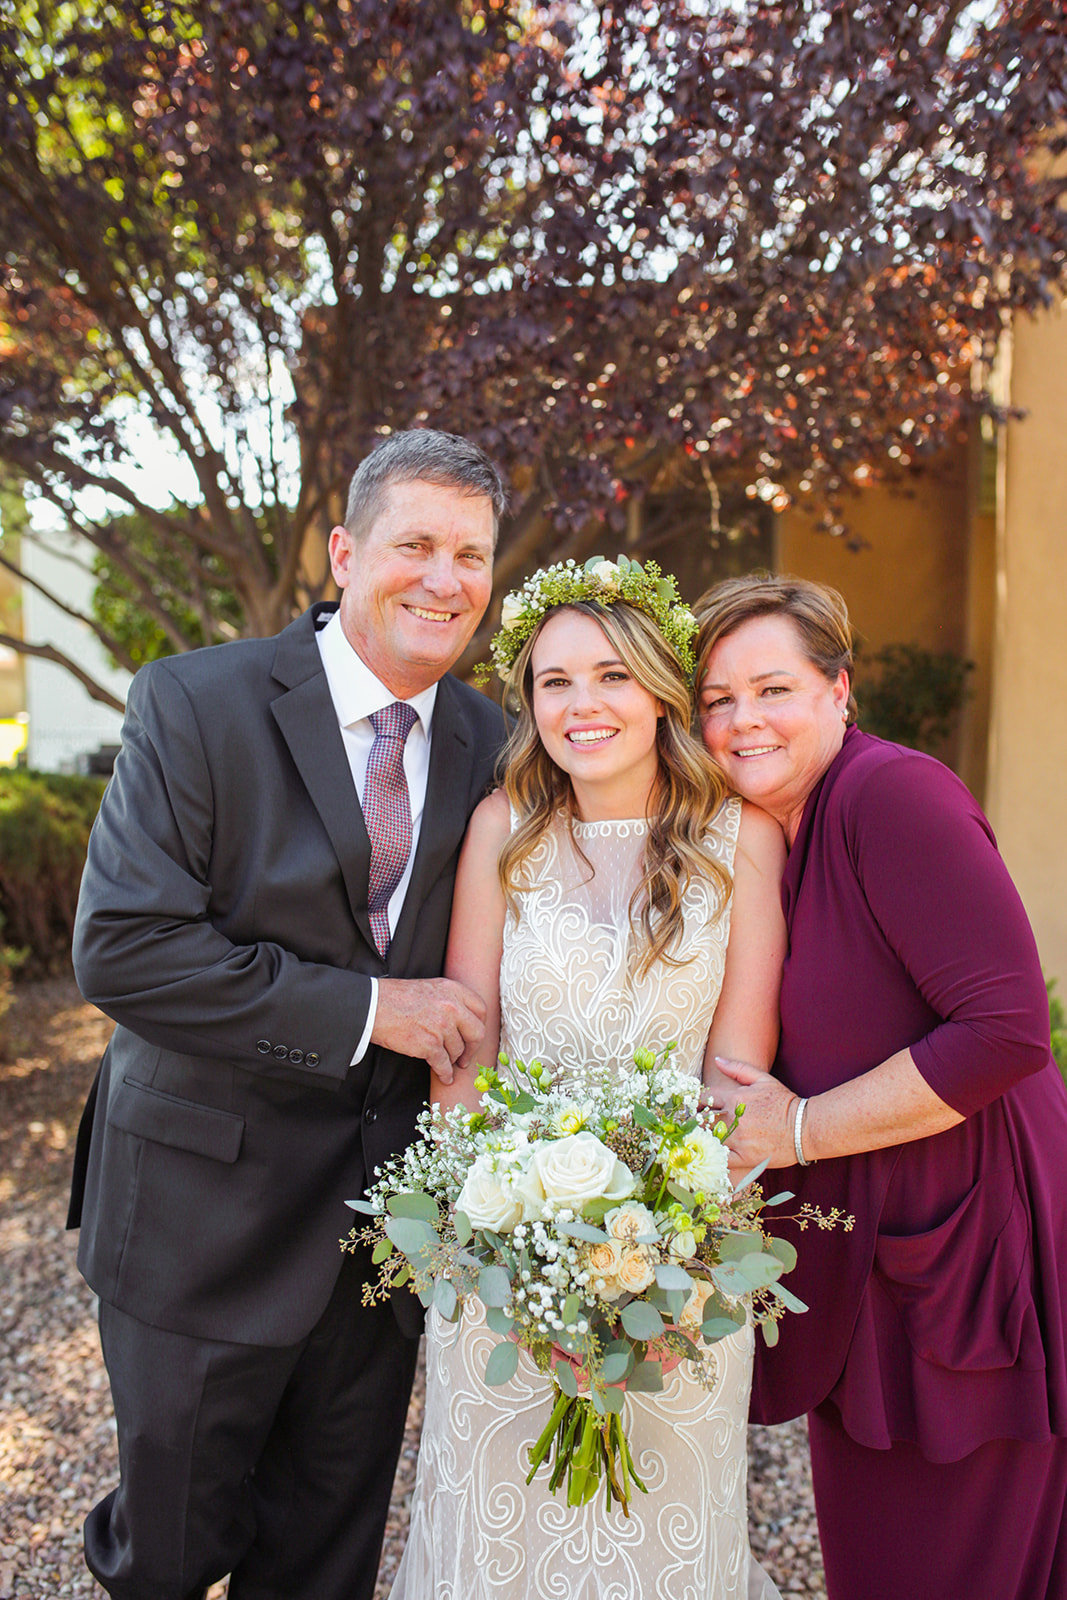 Albuquerque Wedding Photographer_Catholic Wedding_www.tylerbrooke.com_Kate Kauffman_040